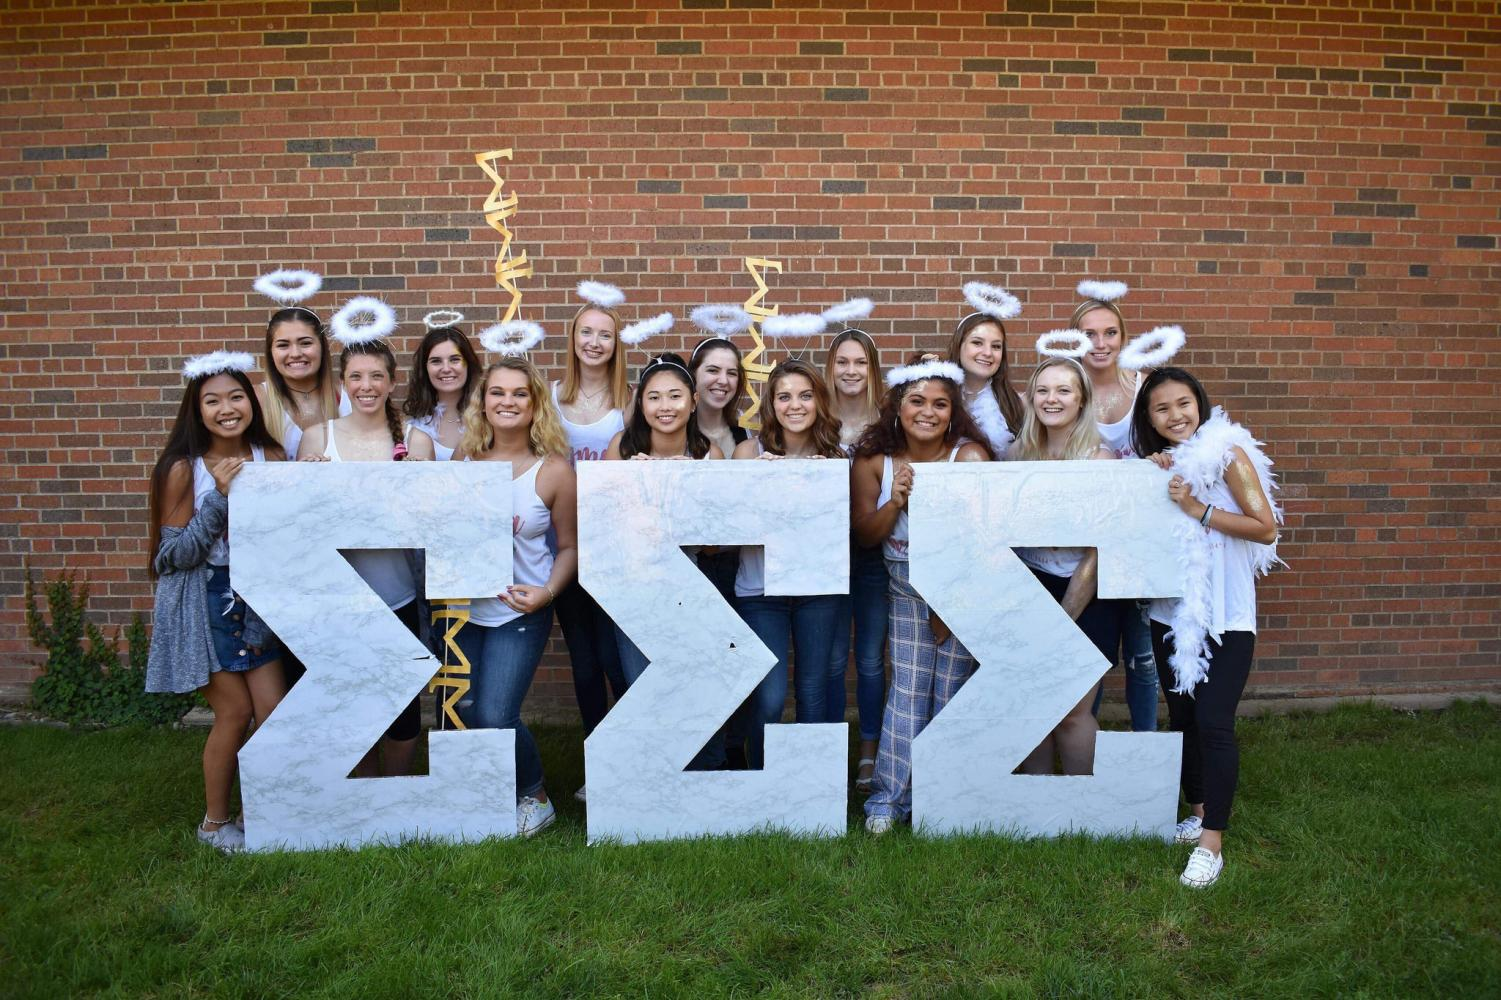 The new members of Tri Sigma pose behind their greek letters during the Bid Day celebration at the Gazebo on Sunday, Sept. 9.